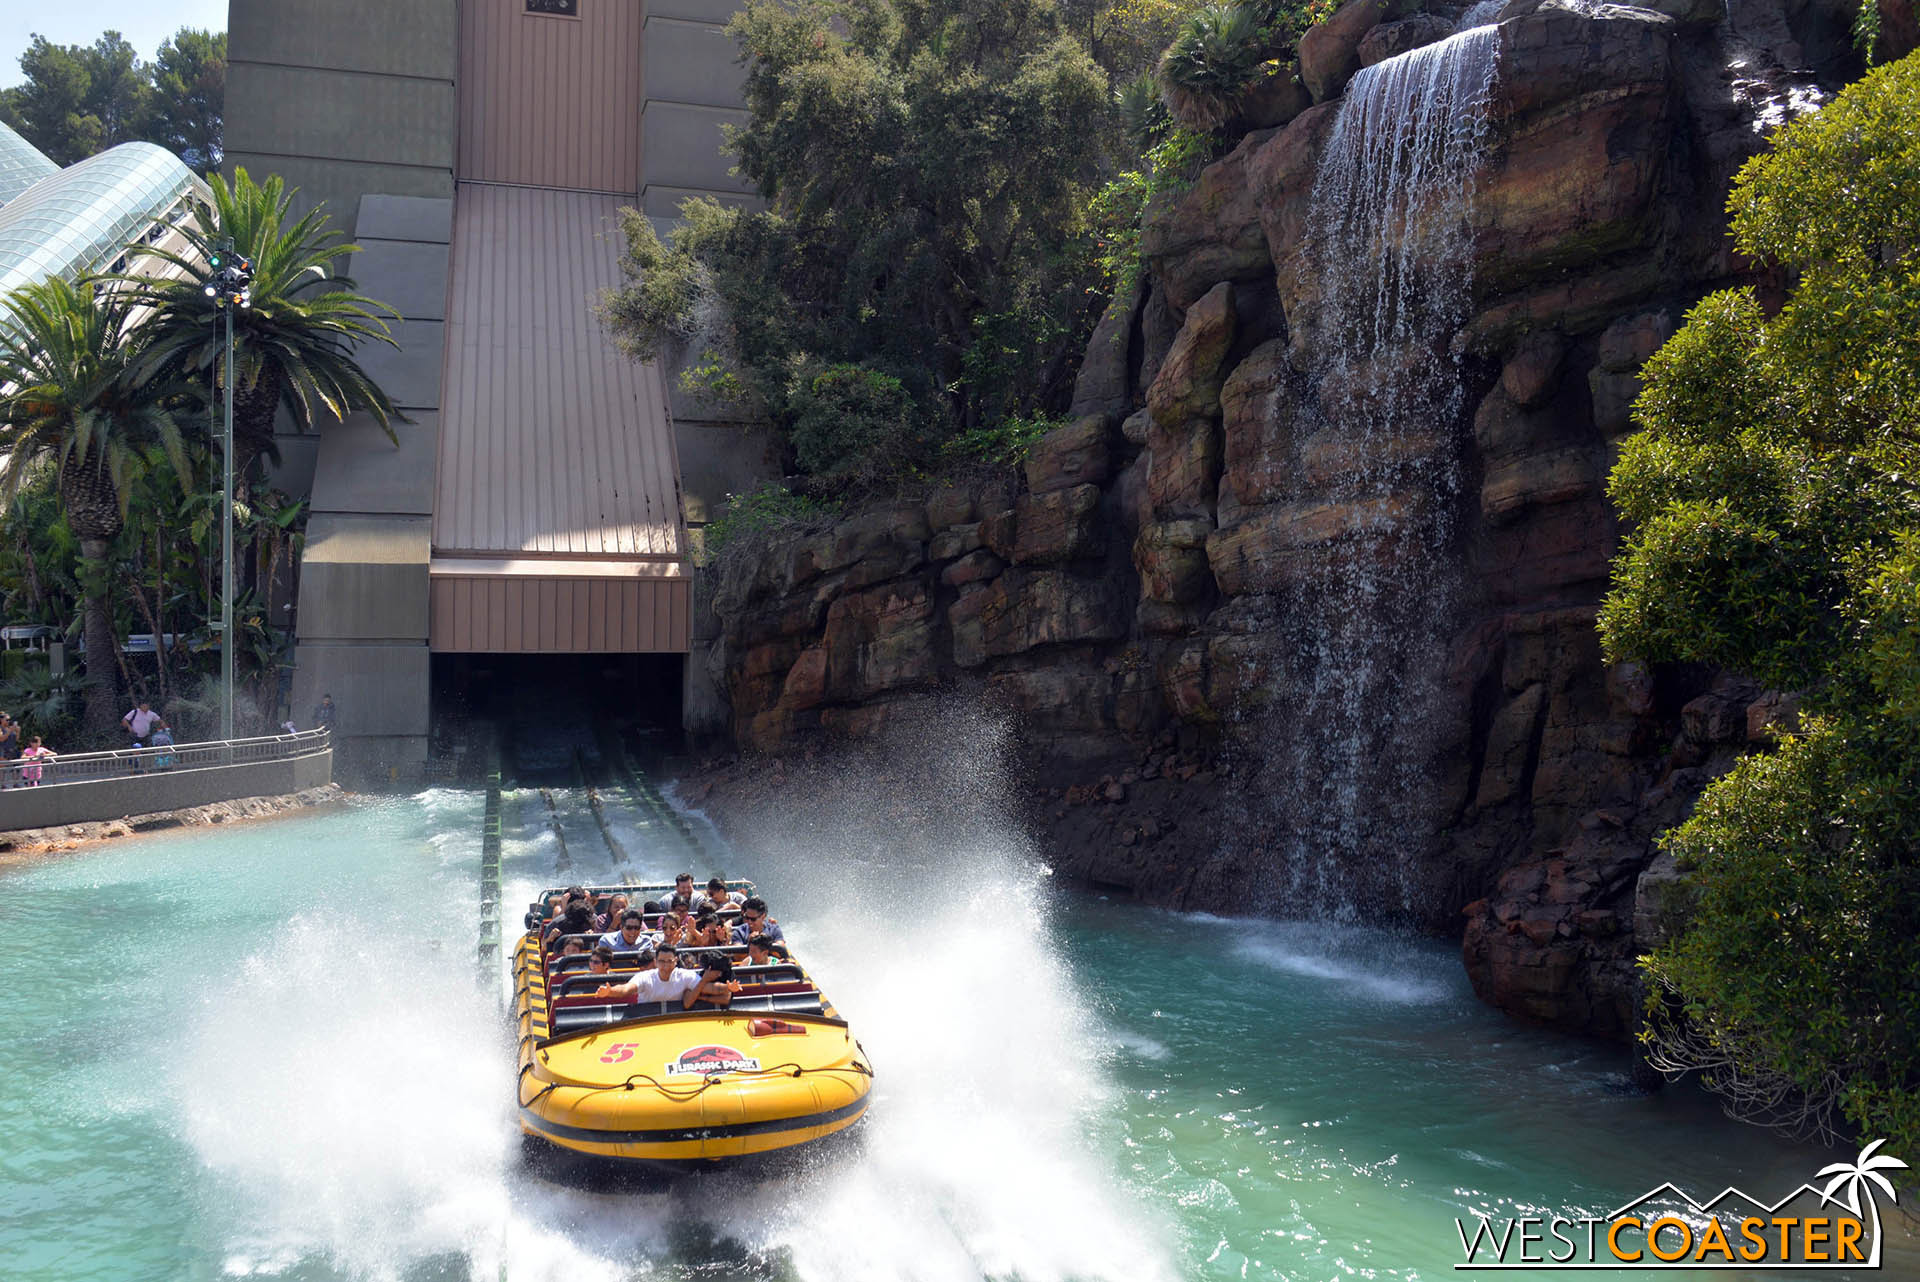 The 85-foot tall, 51-degree final drop was the tallest and steepest of its time when the ride first opened.